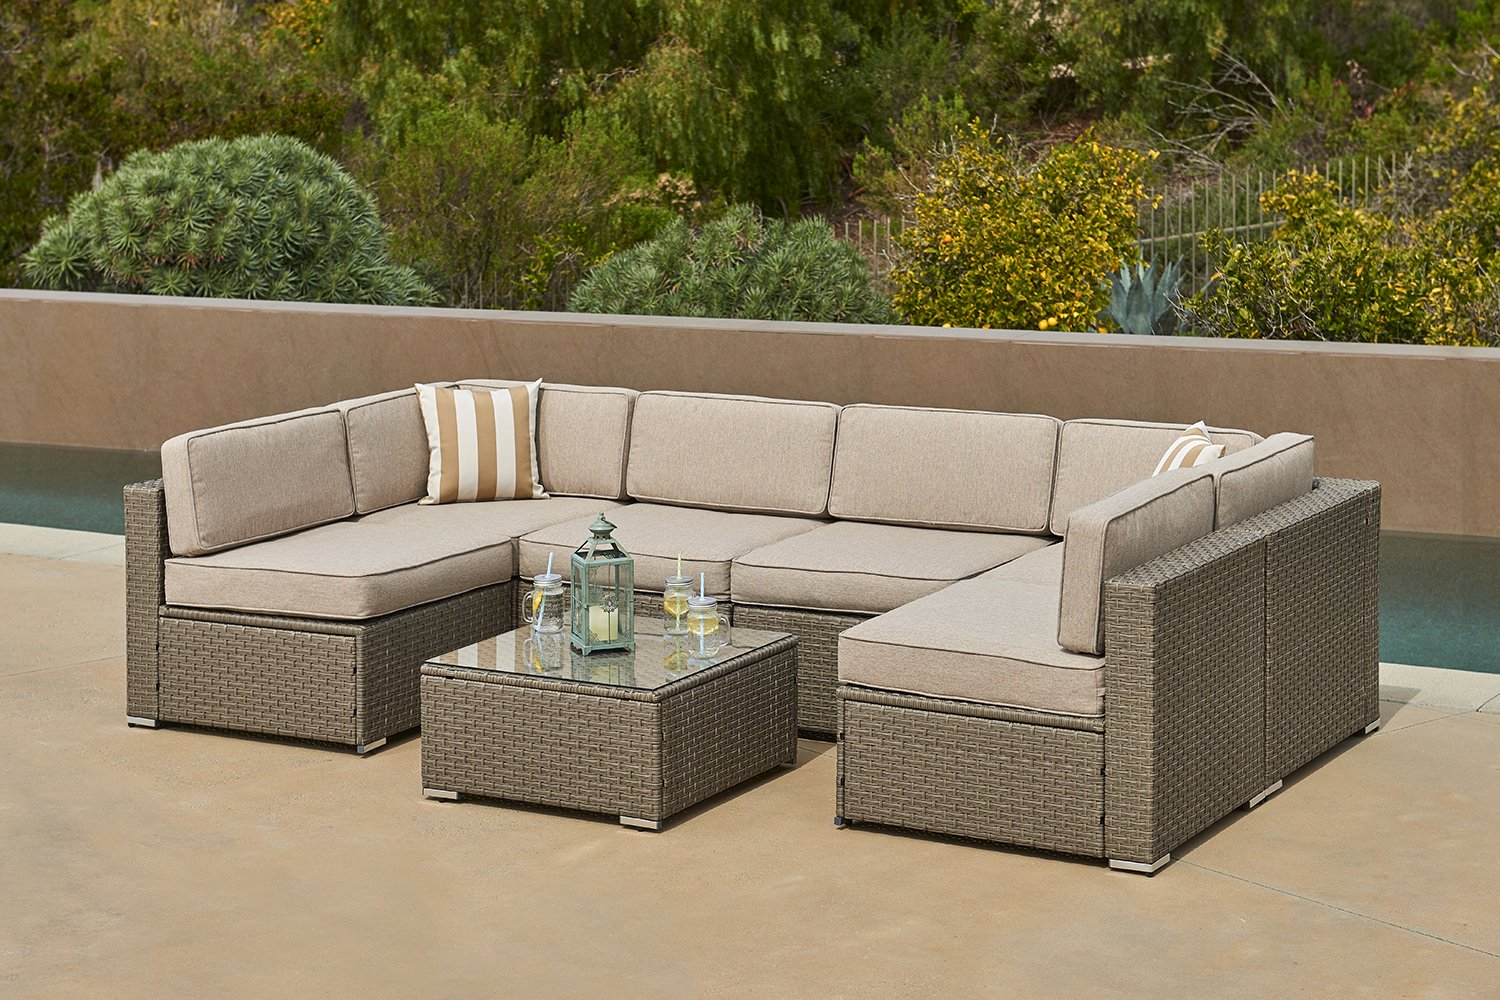 SOLVISTA Outdoor 7-Piece Modular Sectional Furniture Set All Weather Grey Wicker with Light Grey Water Resistant Cushions & Sophisticated Glass Coffee Table | Patio, Backyard, Pool